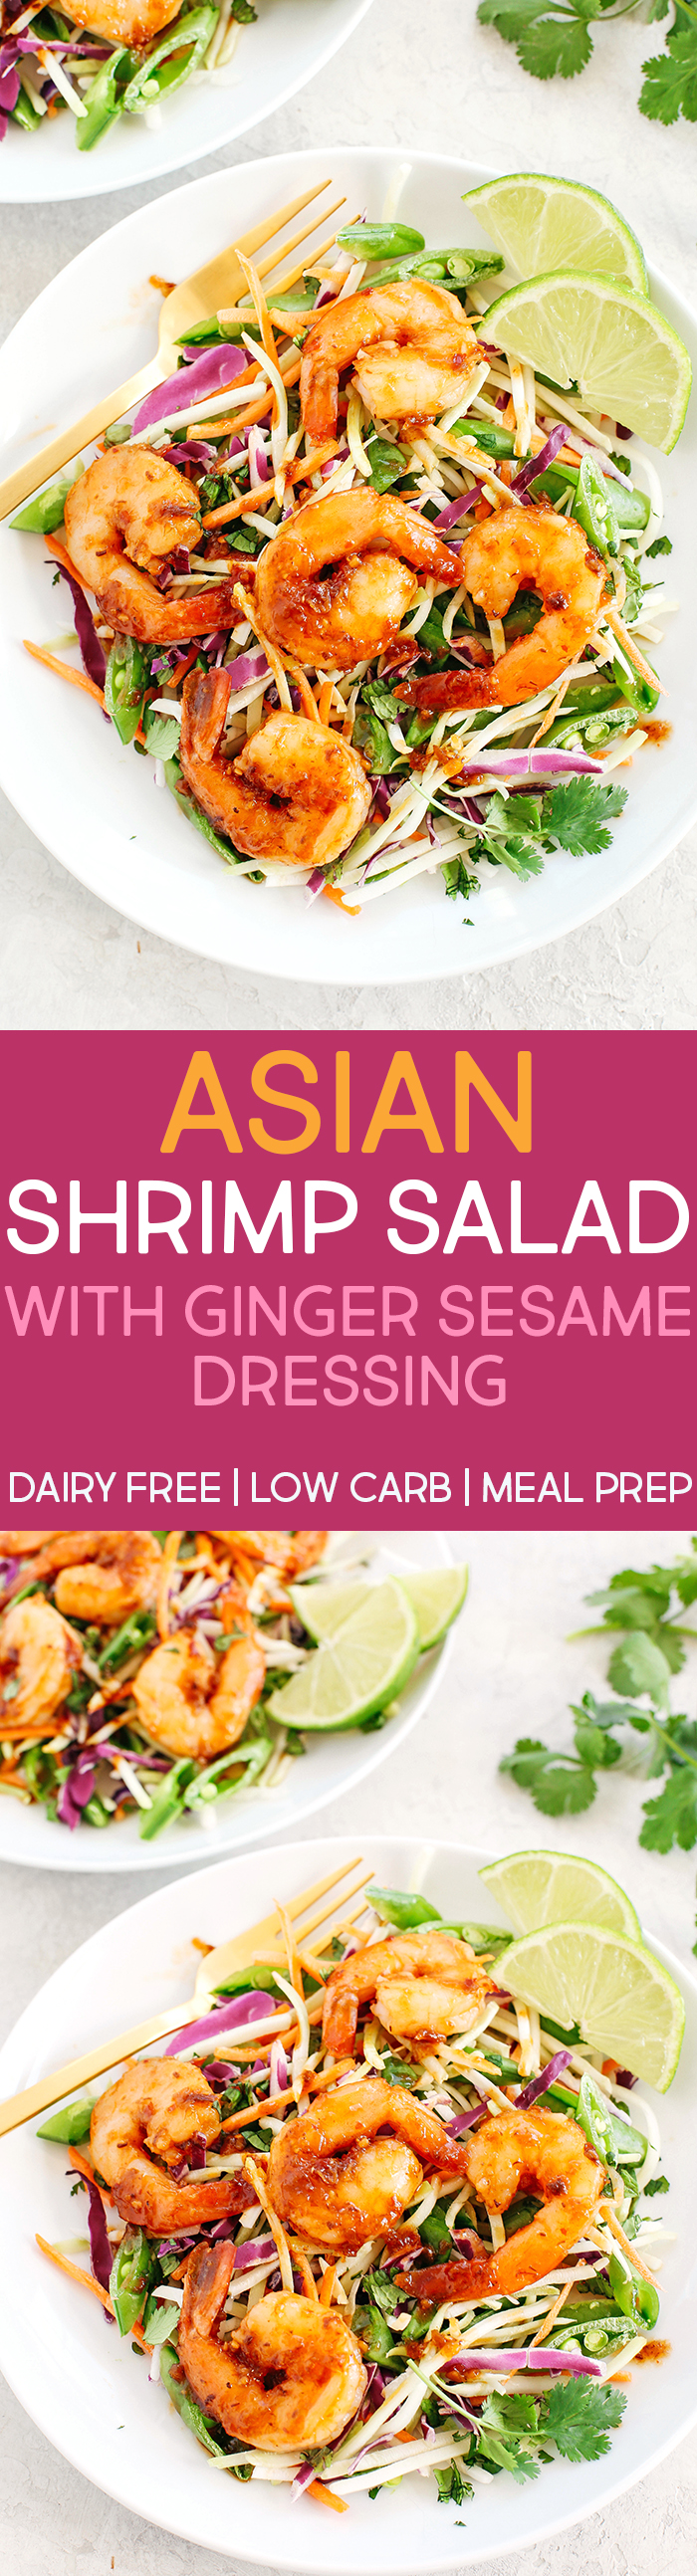 This quick and EASY Asian Shrimp Salad with Ginger Sesame Dressing is complete with all your favorite flavors, crunchy veggies and fresh herbs that can be easily made in just minutes! #dairyfree #lowcarb #mealprep